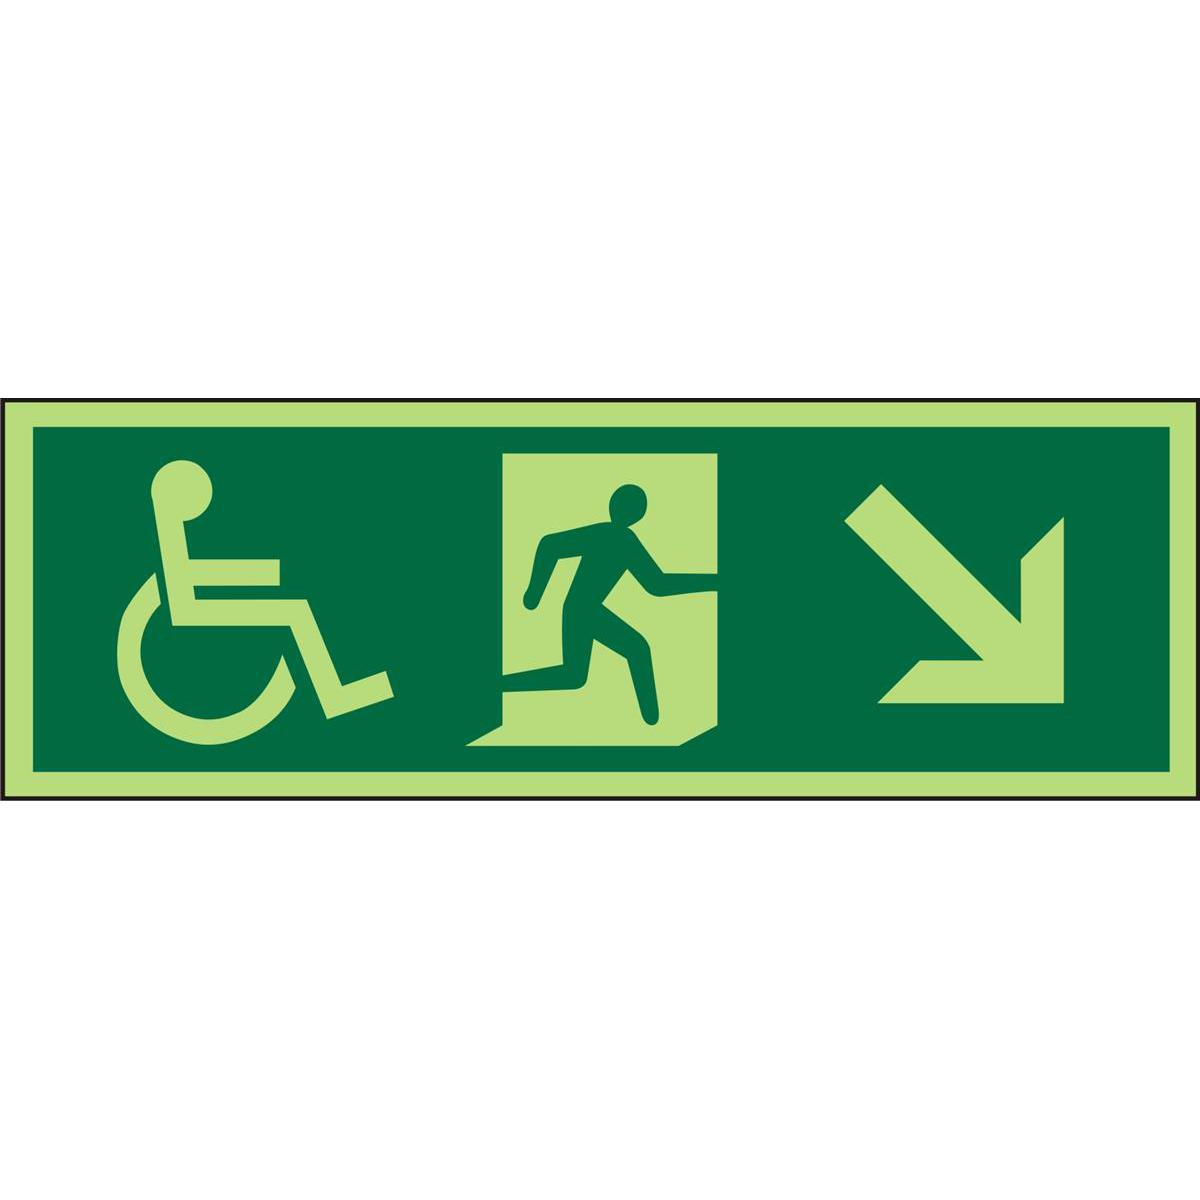 Photol Exit Sign 2mm Wheelchair PictoMan run right Arrow right Ref PDSP062450x150 Up to 10Day Leadtime